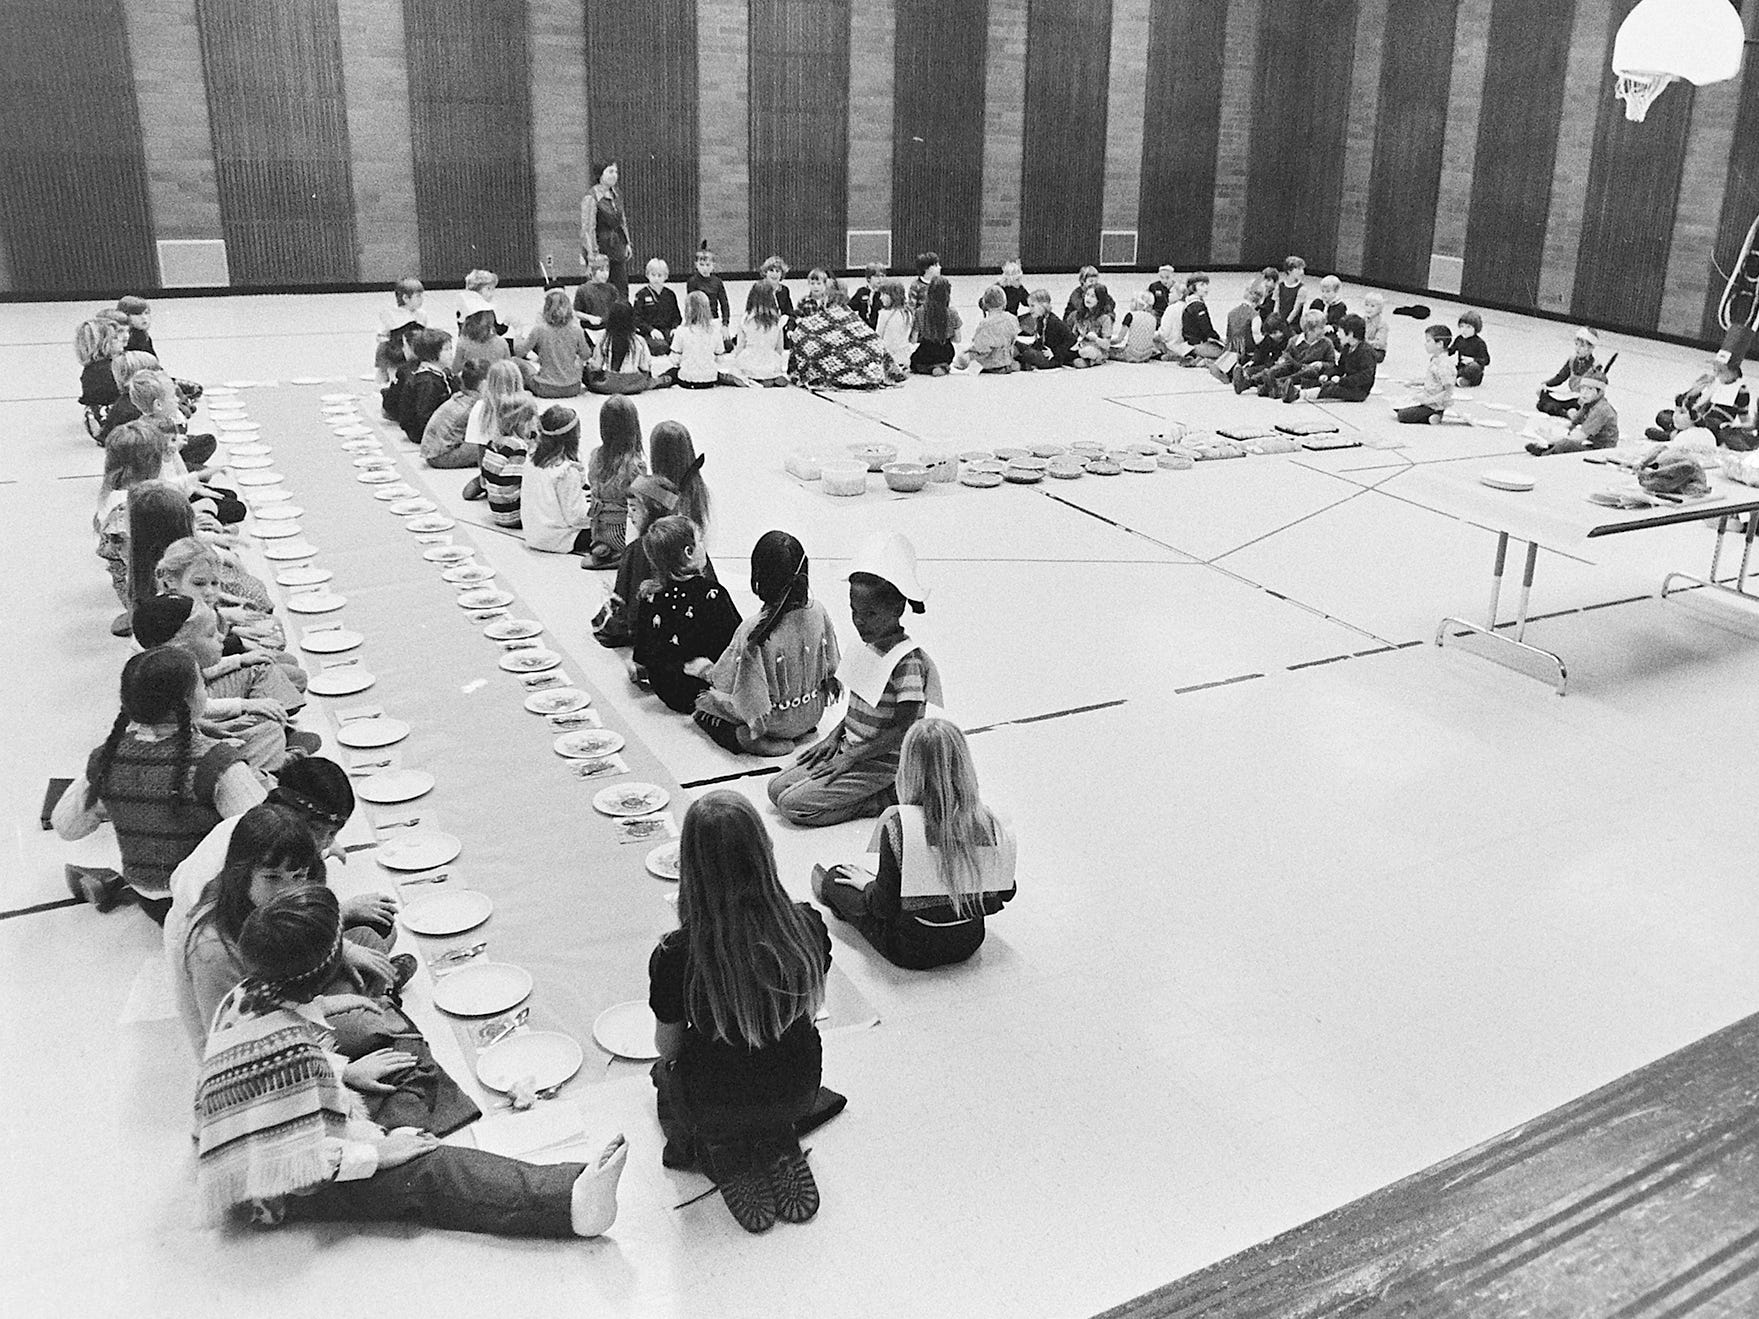 11/21/73